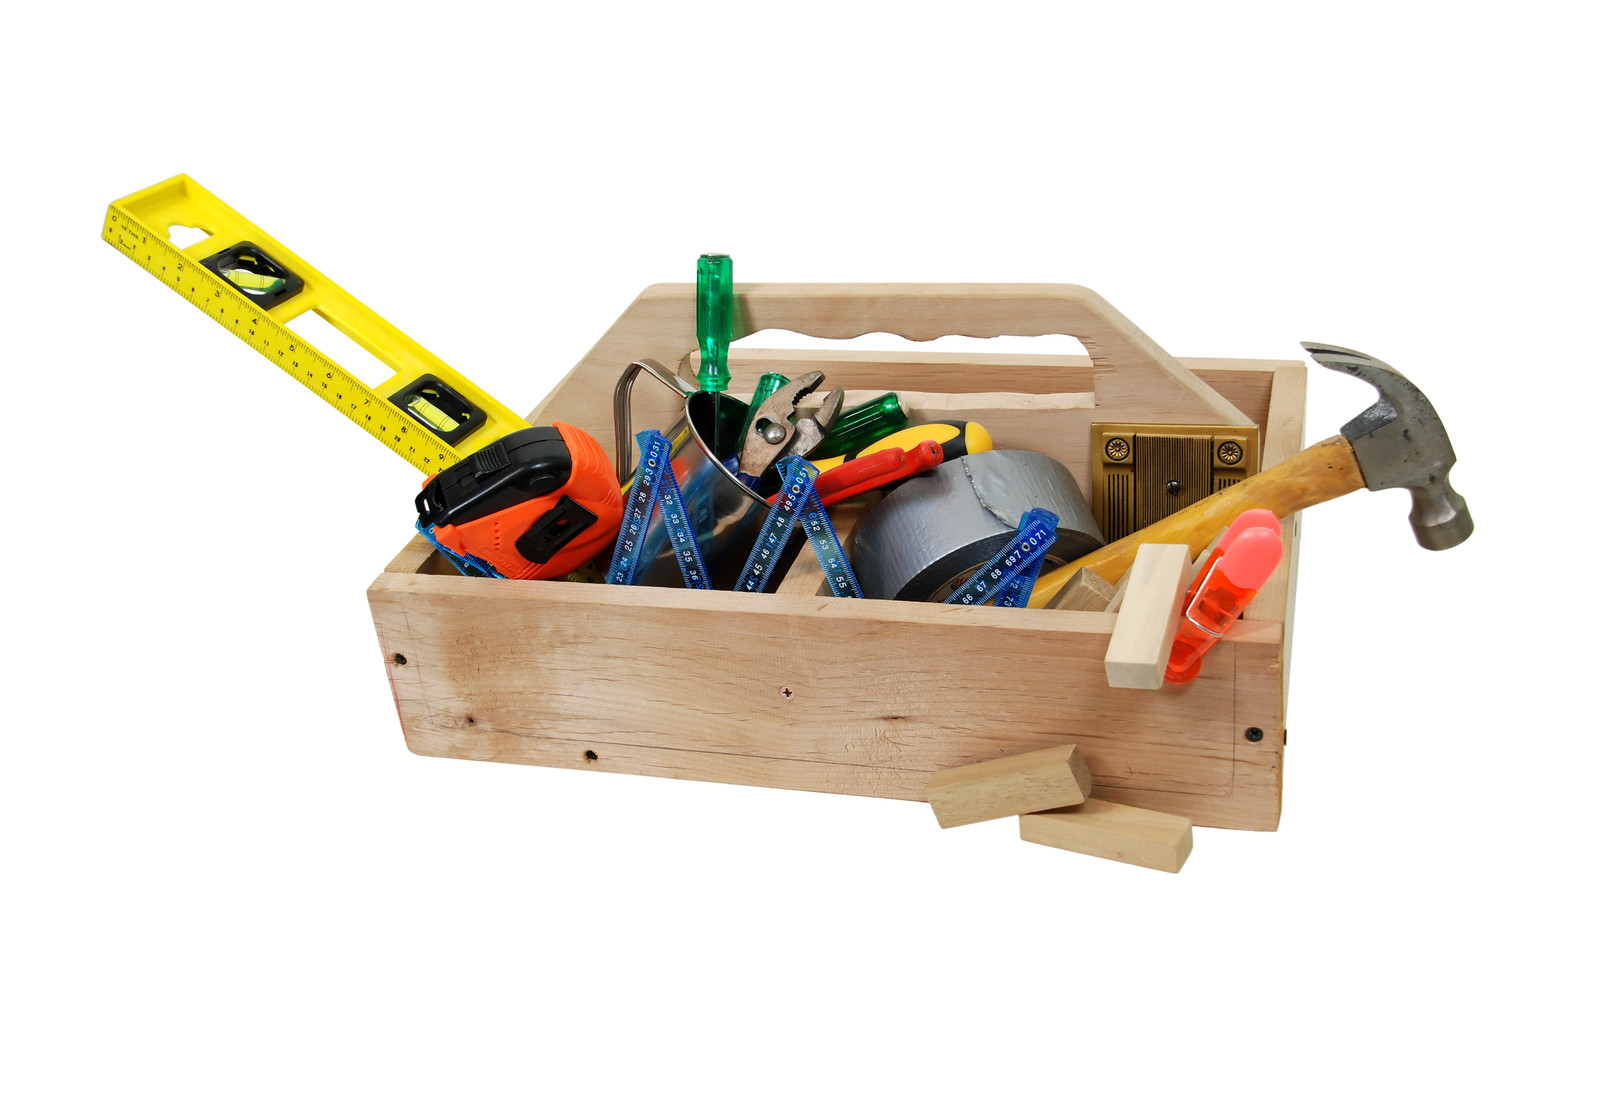 toolboxcanstockphoto1848998[1]